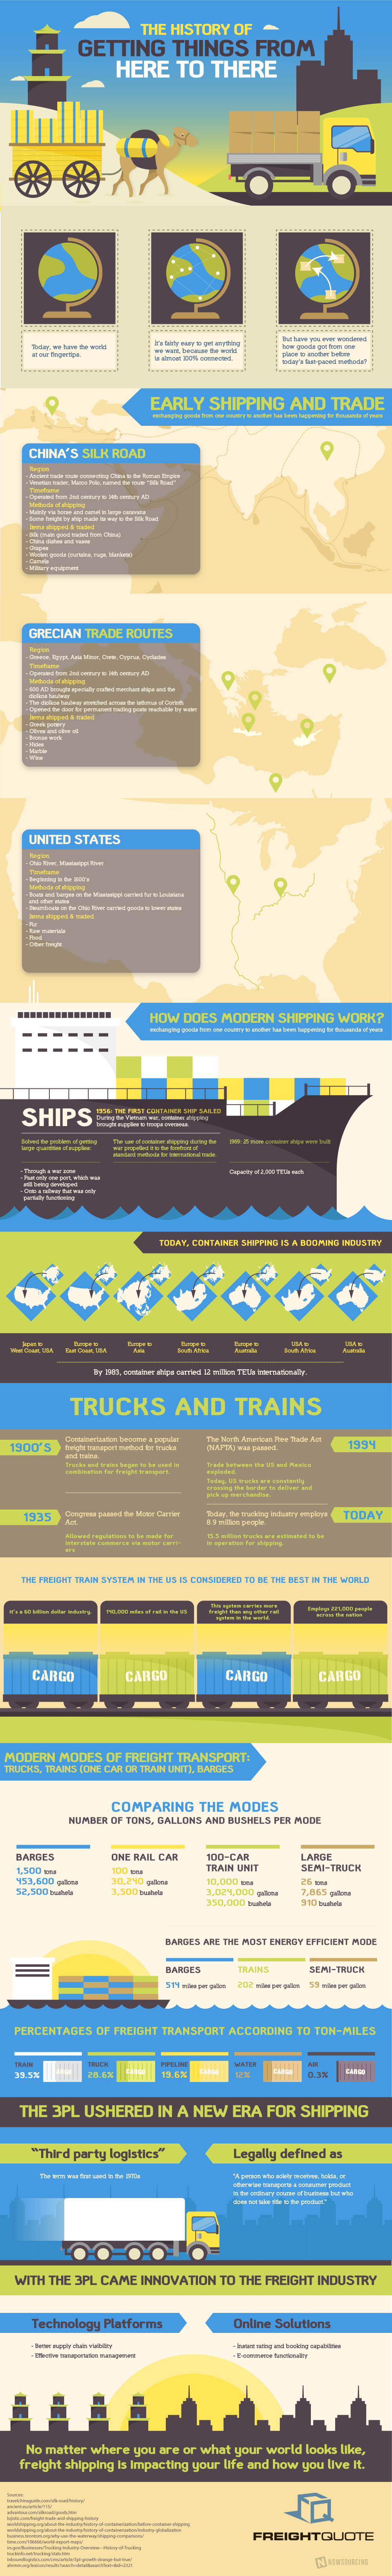 History_of_Freight_Shipping